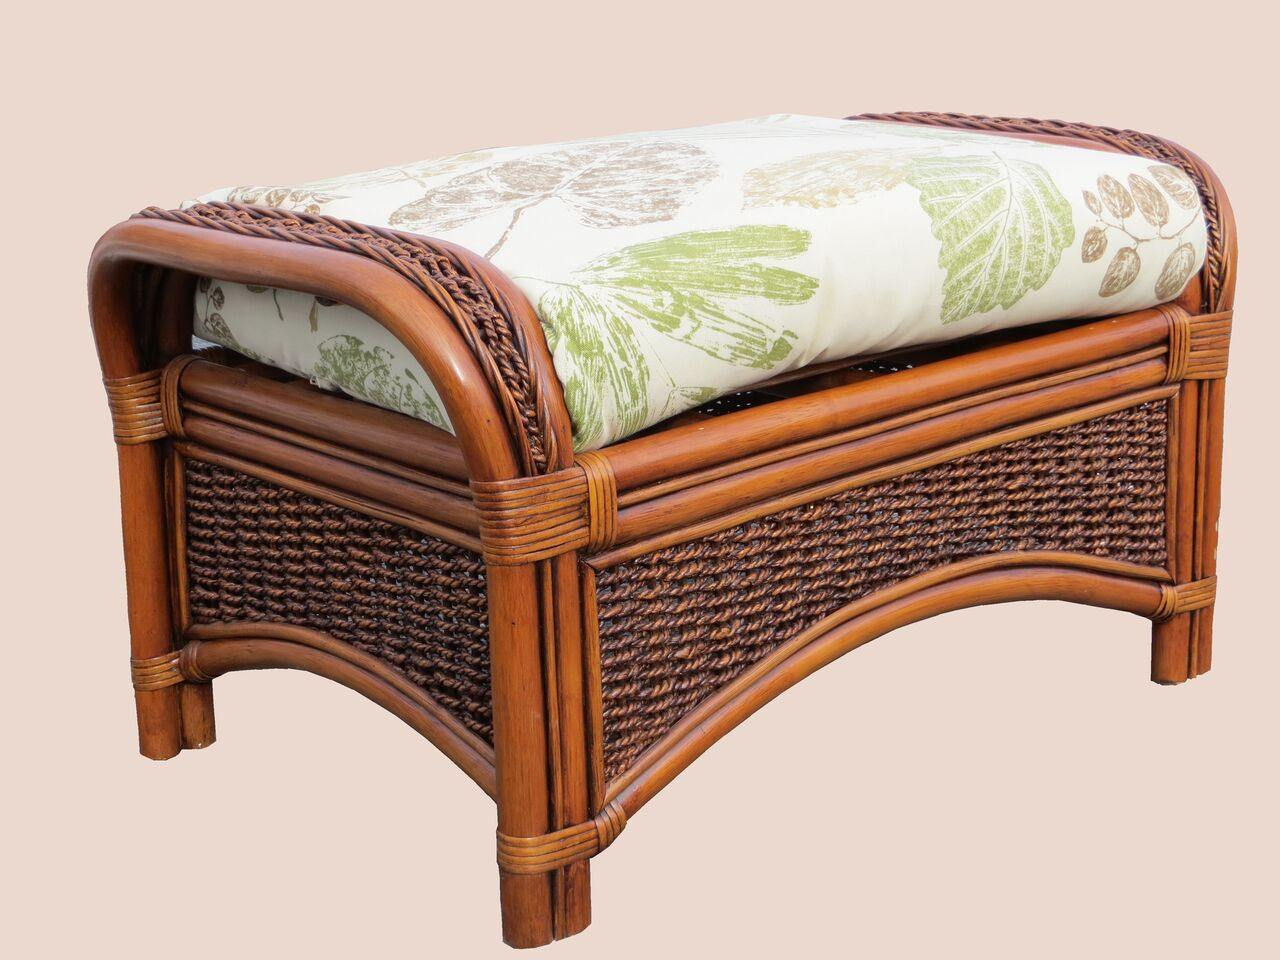 Spice Islands Spice Islands Seascape Ottoman Brownwash Ottoman - Rattan Imports